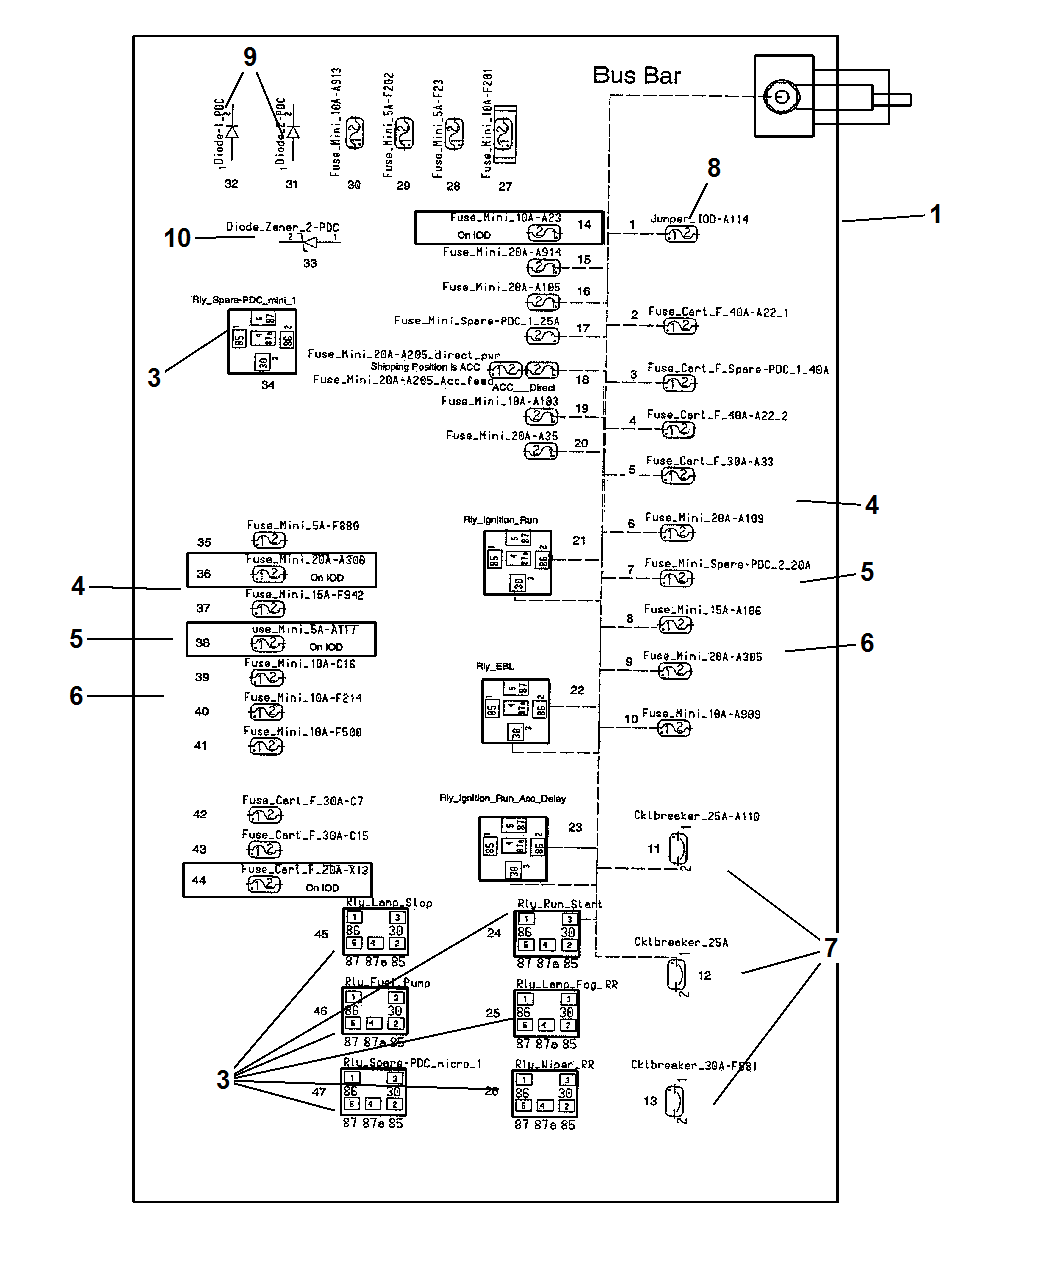 2006 Chrysler 300 Wiring Diagram